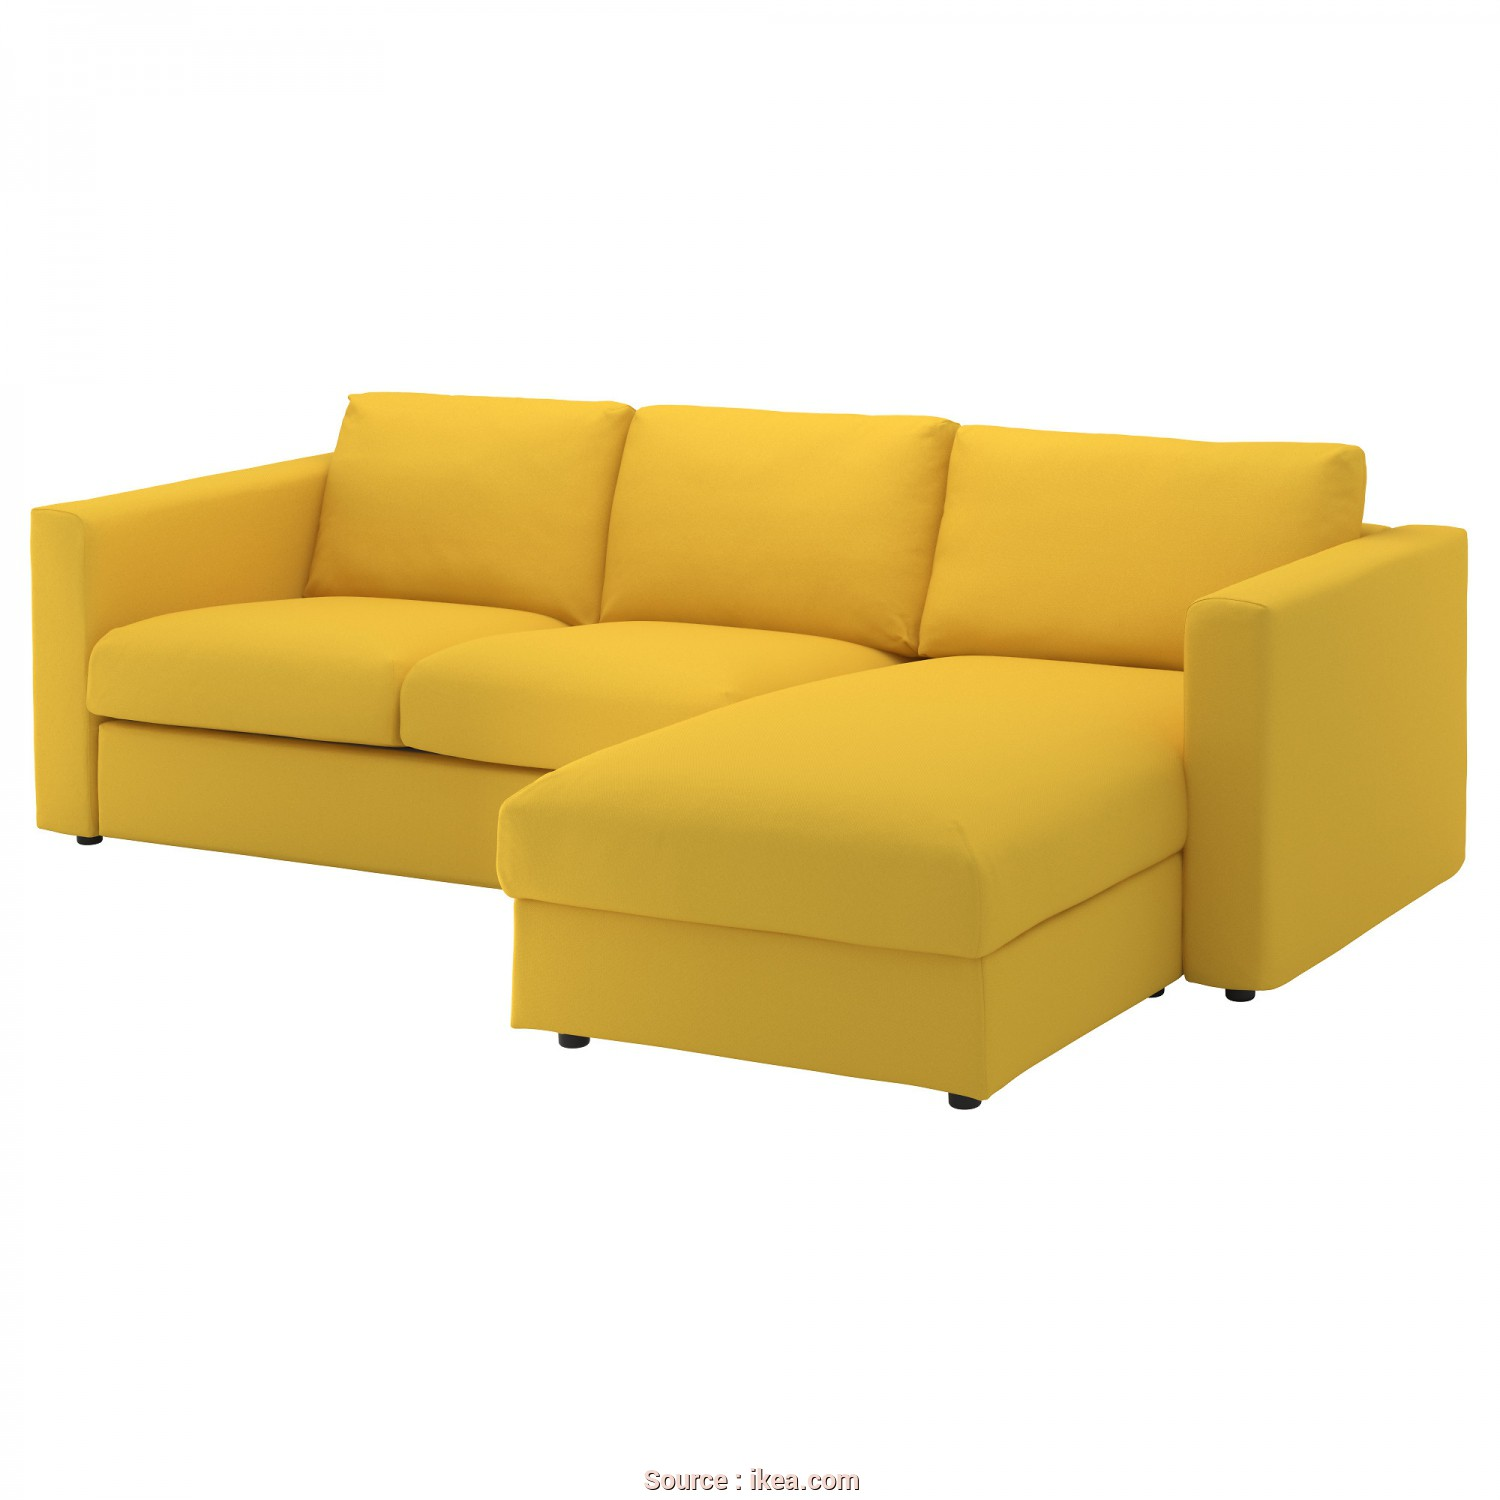 Ikea Klippan 3 Seater Sofa Dimensions, Costoso IKEA VIMLE 3-Seat Sofa, Cover Is Easy To Keep Clean Since It Is